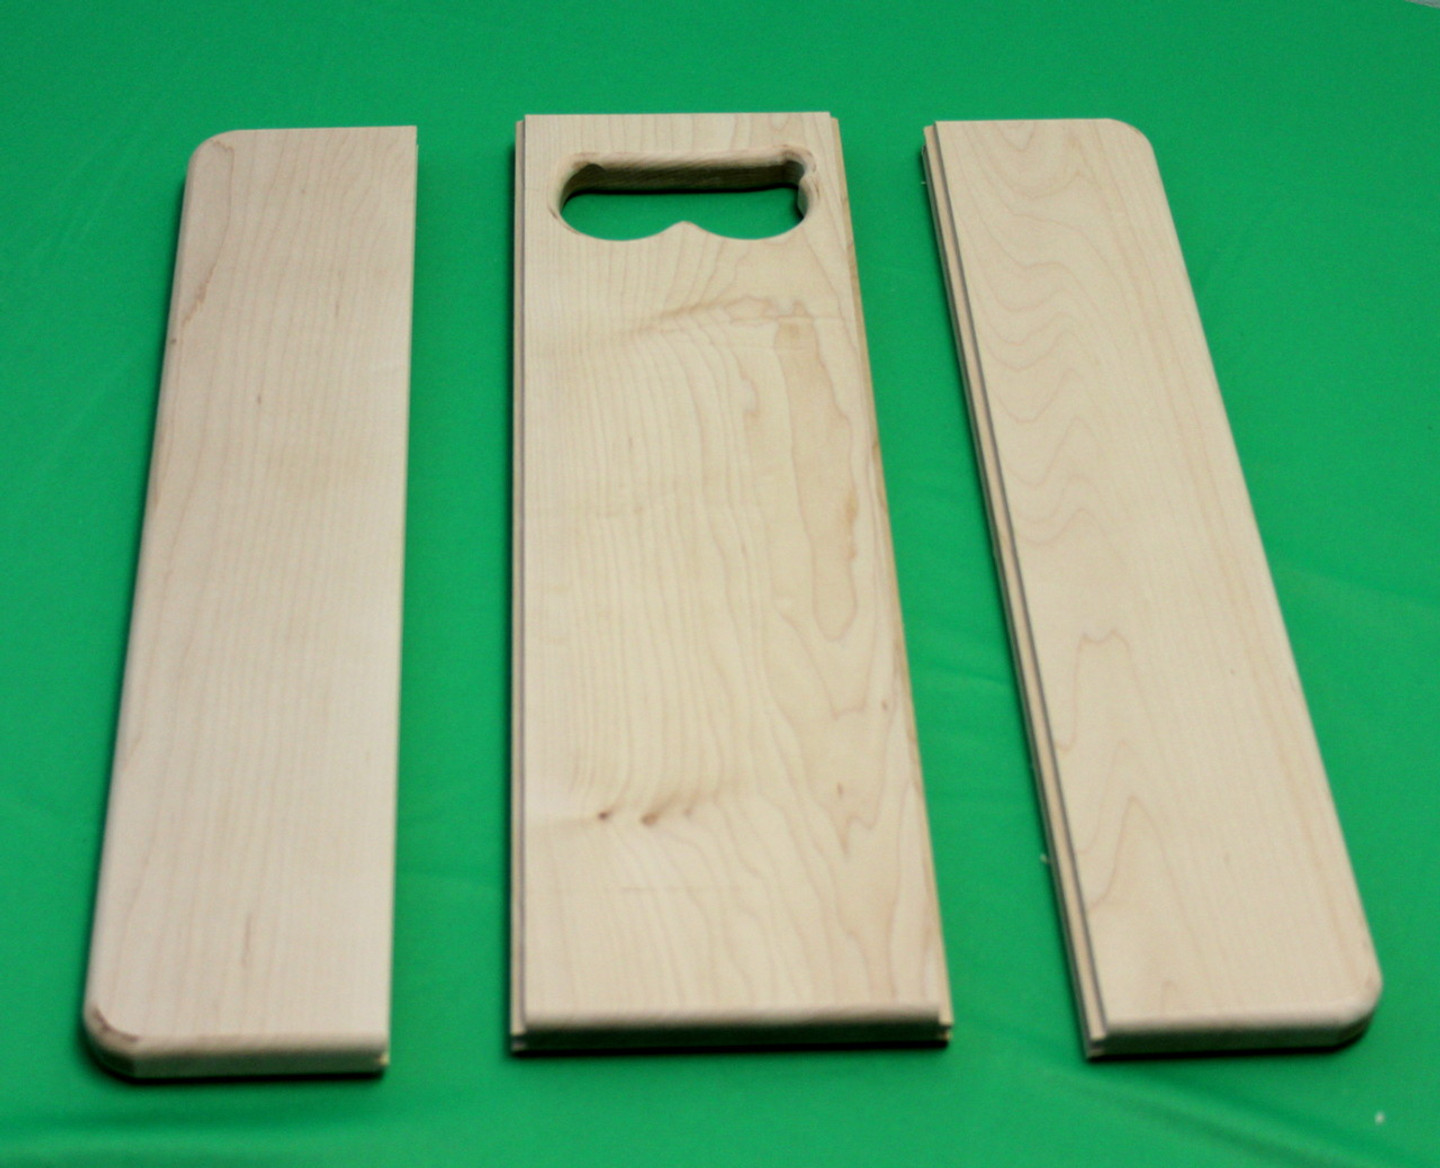 The Beginners Basic Cutting Board is comprised of three